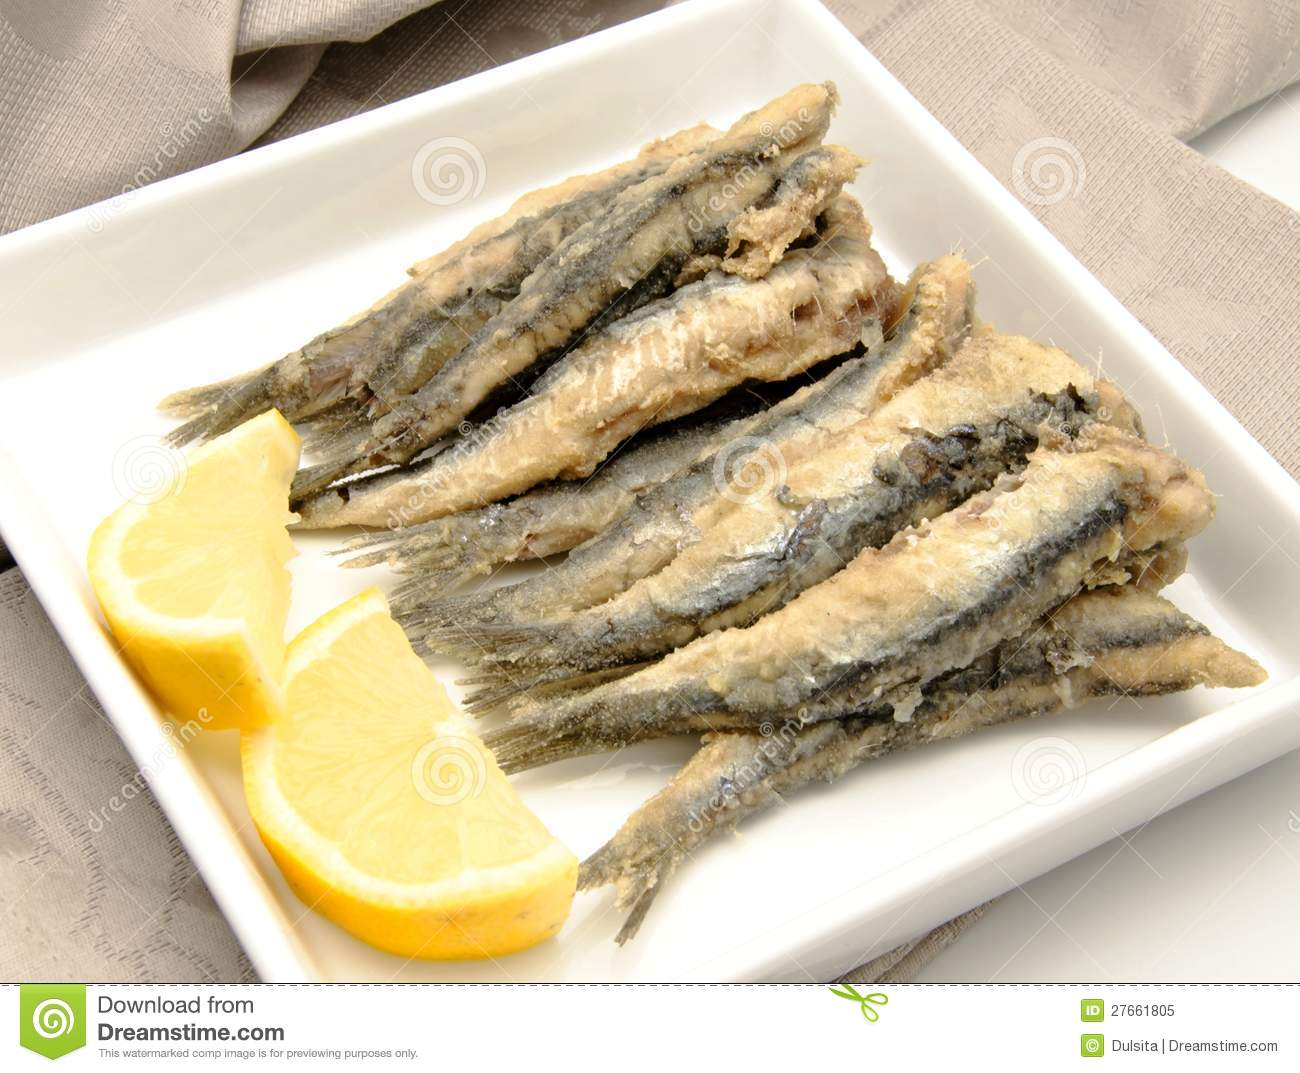 Fried Anchovies Royalty Free Stock Photo - Image: 27661805